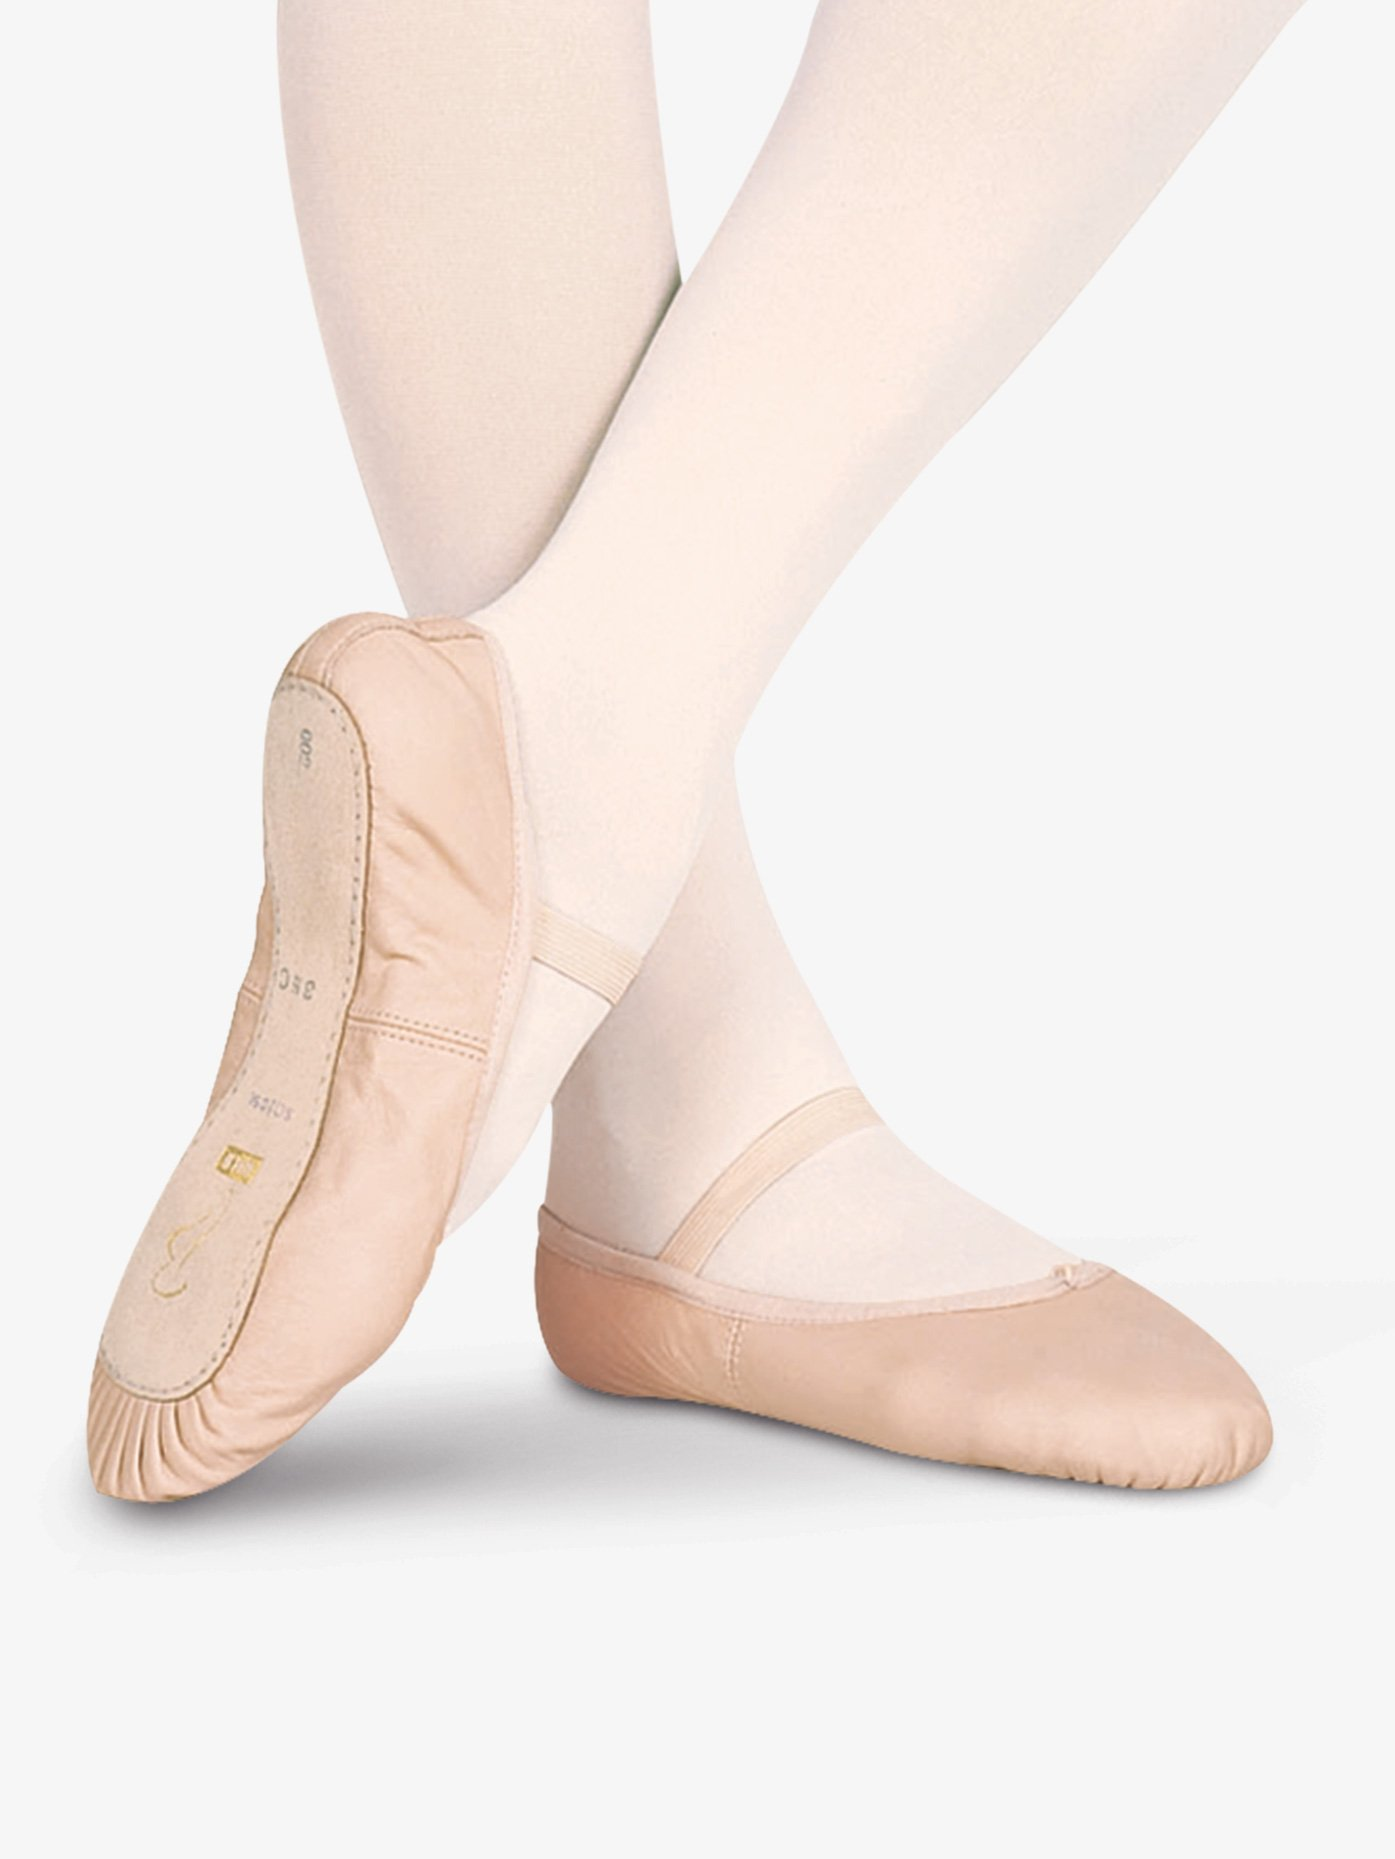 Bloch Toddler Dansoft Leather Full Sole Ballet Shoes S0205T